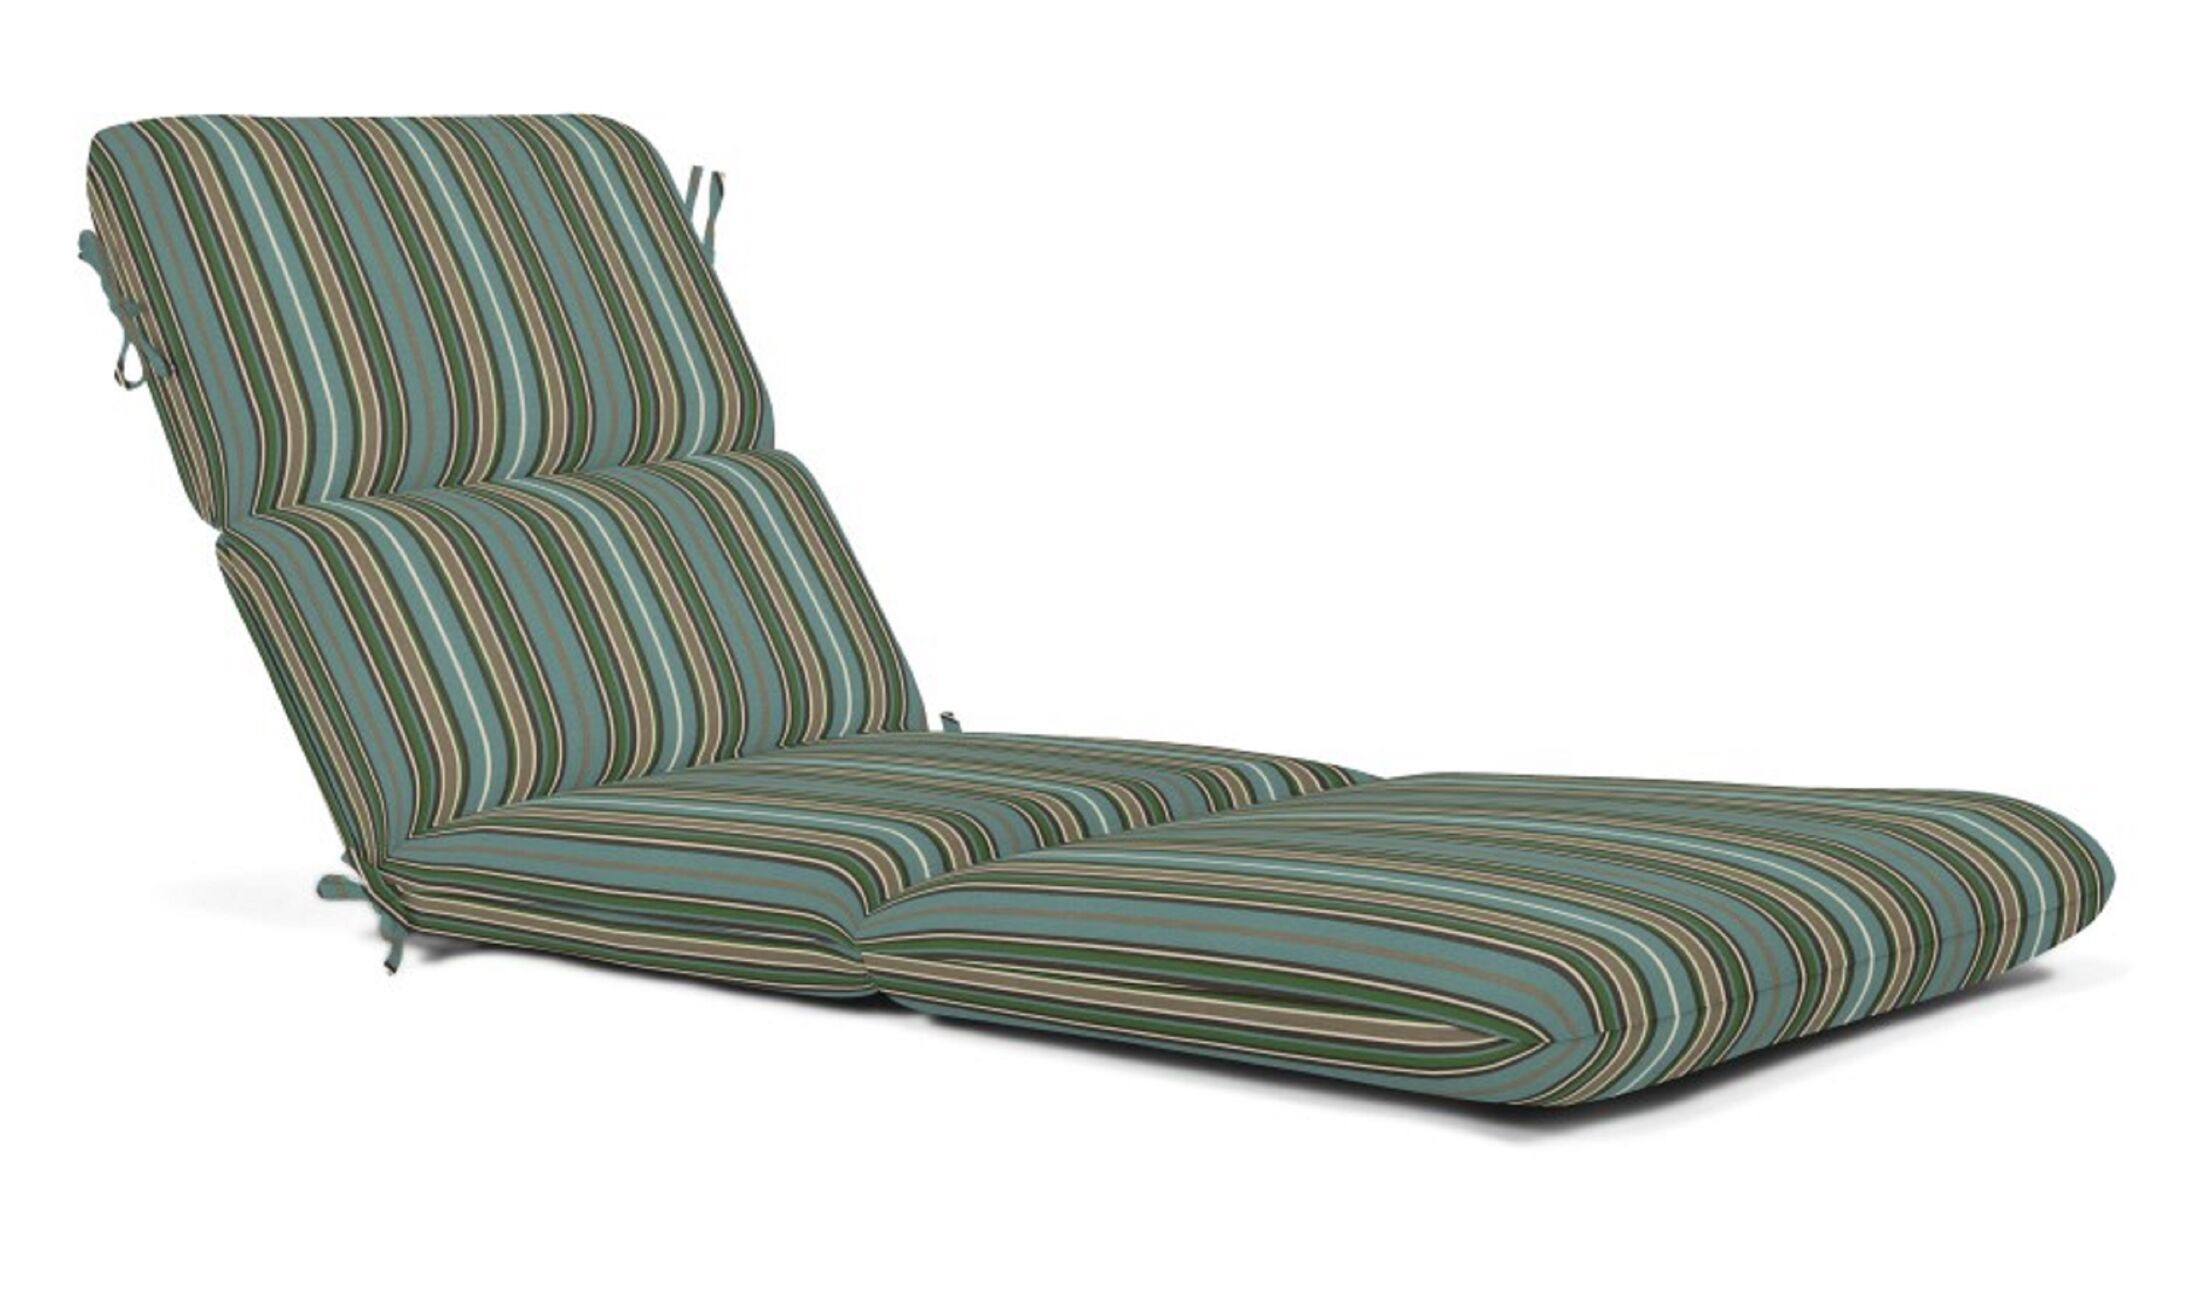 Indoor/Outdoor Chaise Lounge Cushion Fabric: Cilantro